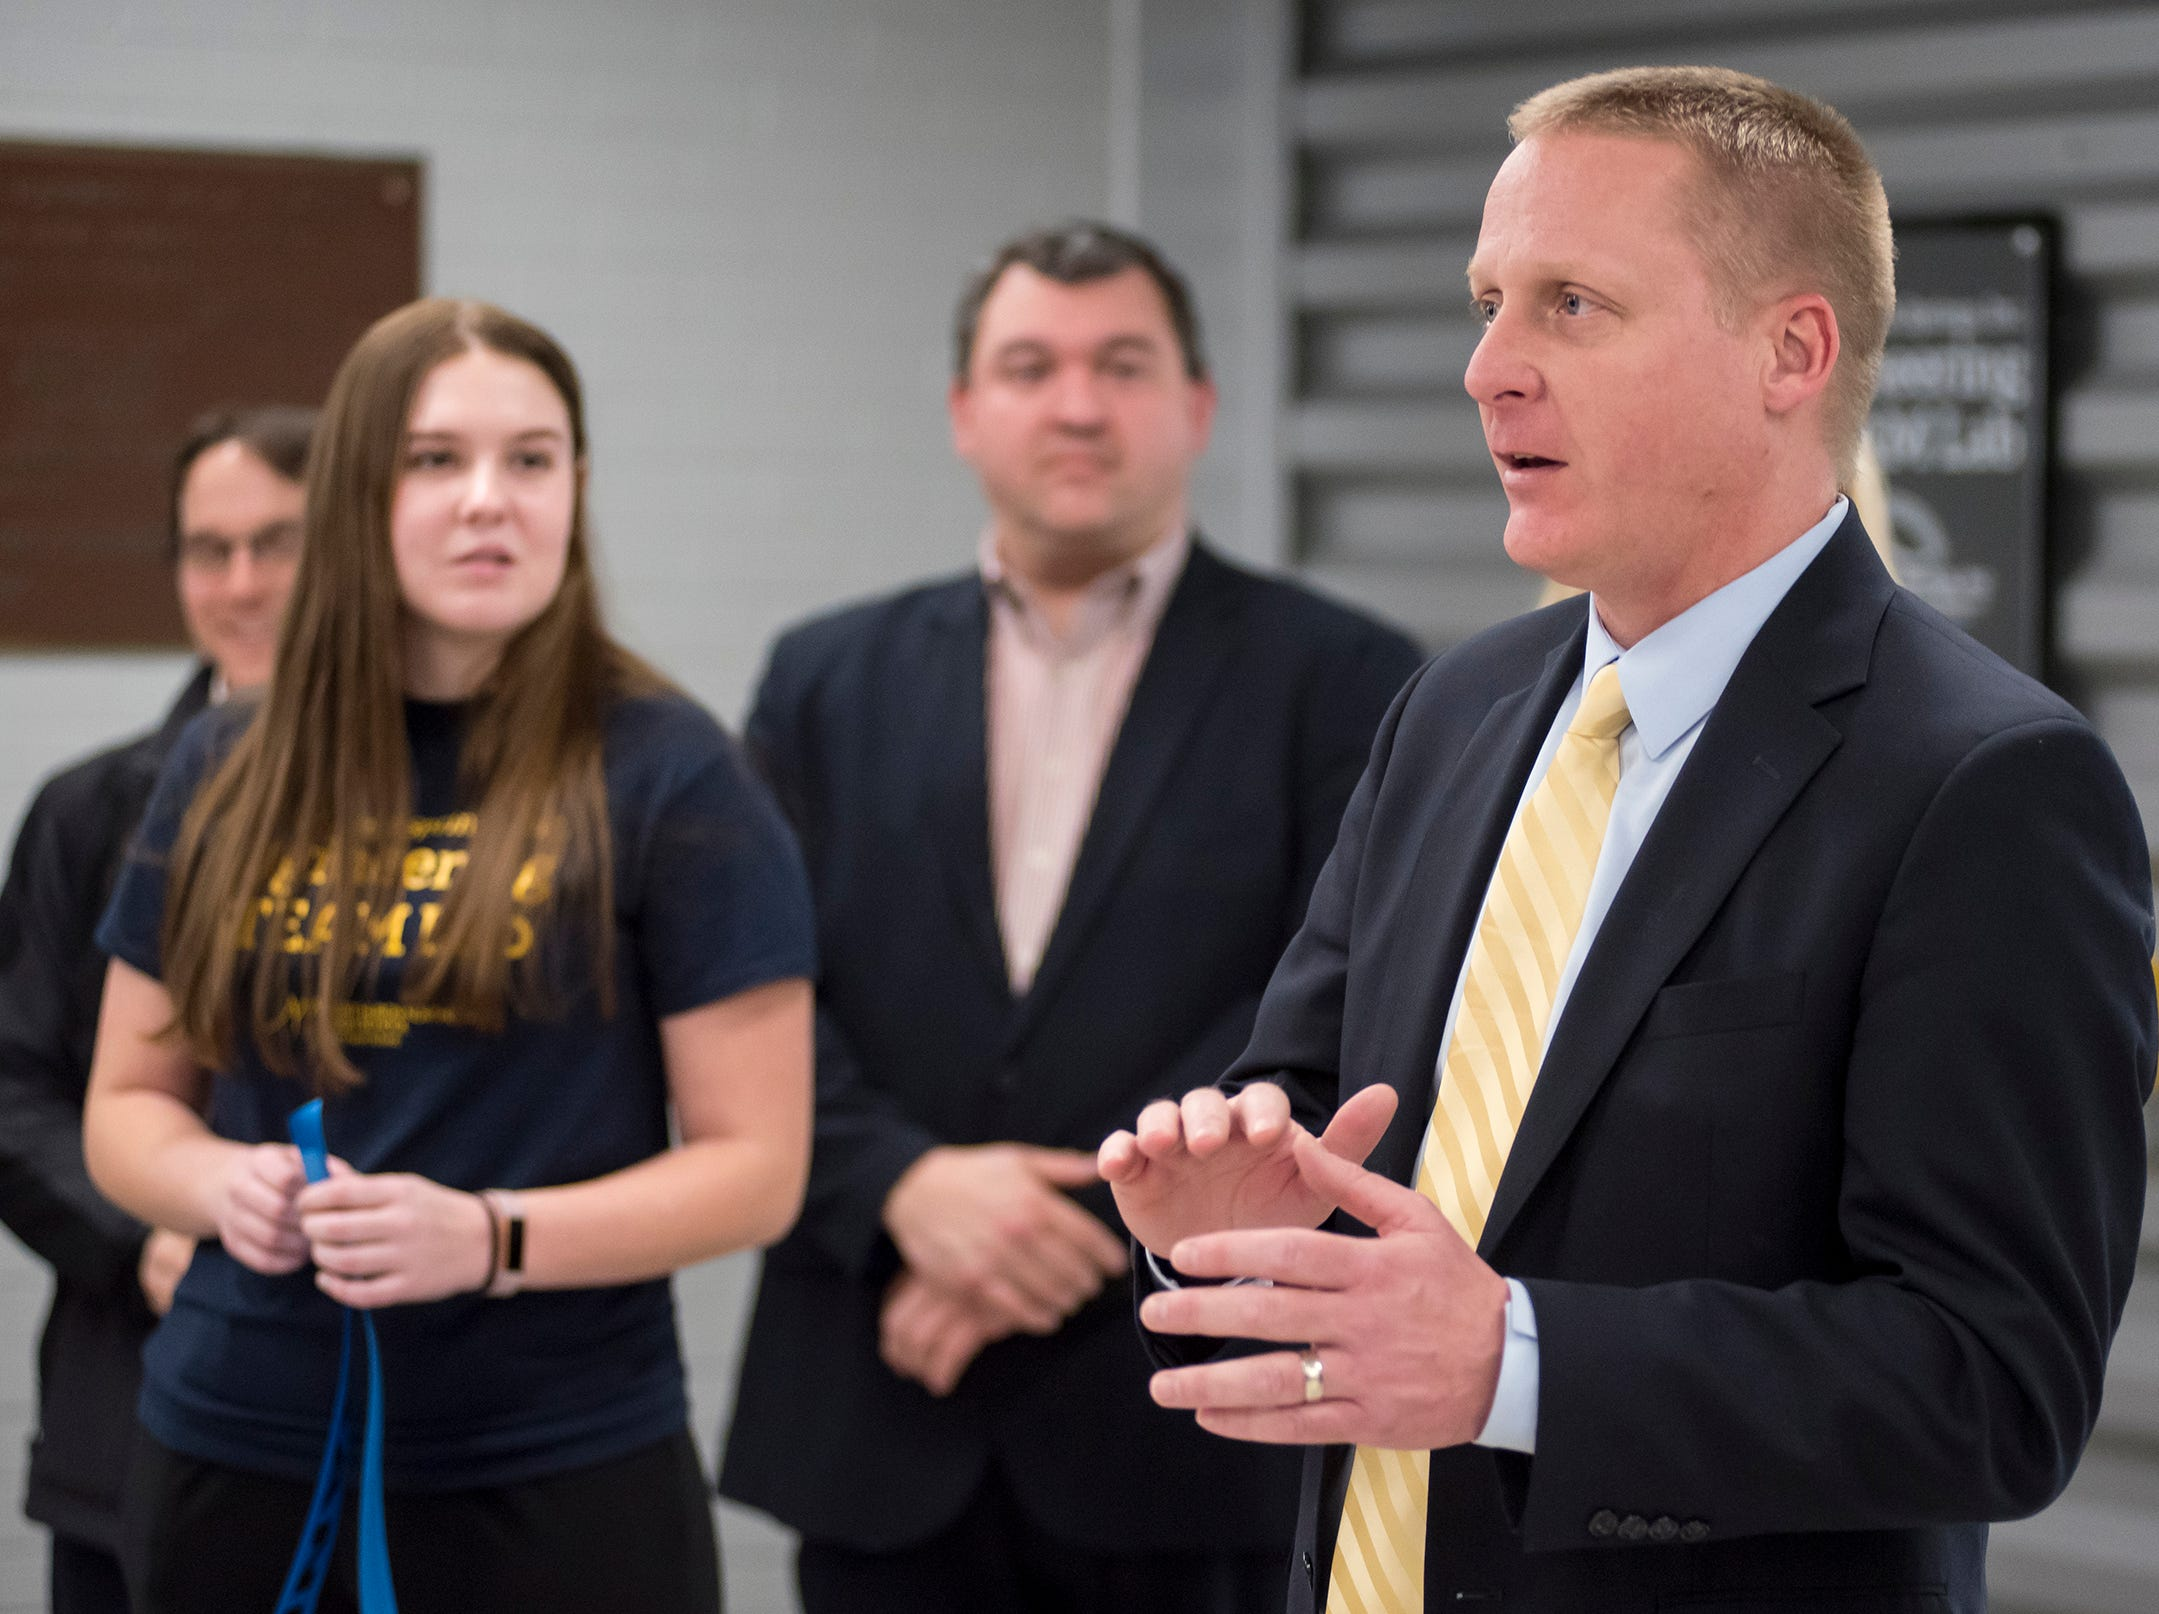 Port Huron Northern Principal Charles Mossett speaks at a ribbon cutting ceremony for the P.J. Wallbank Springs, Inc. Engineering STEAM Lab  Wednesday, Jan. 23, 2019 at Port Huron Northern.